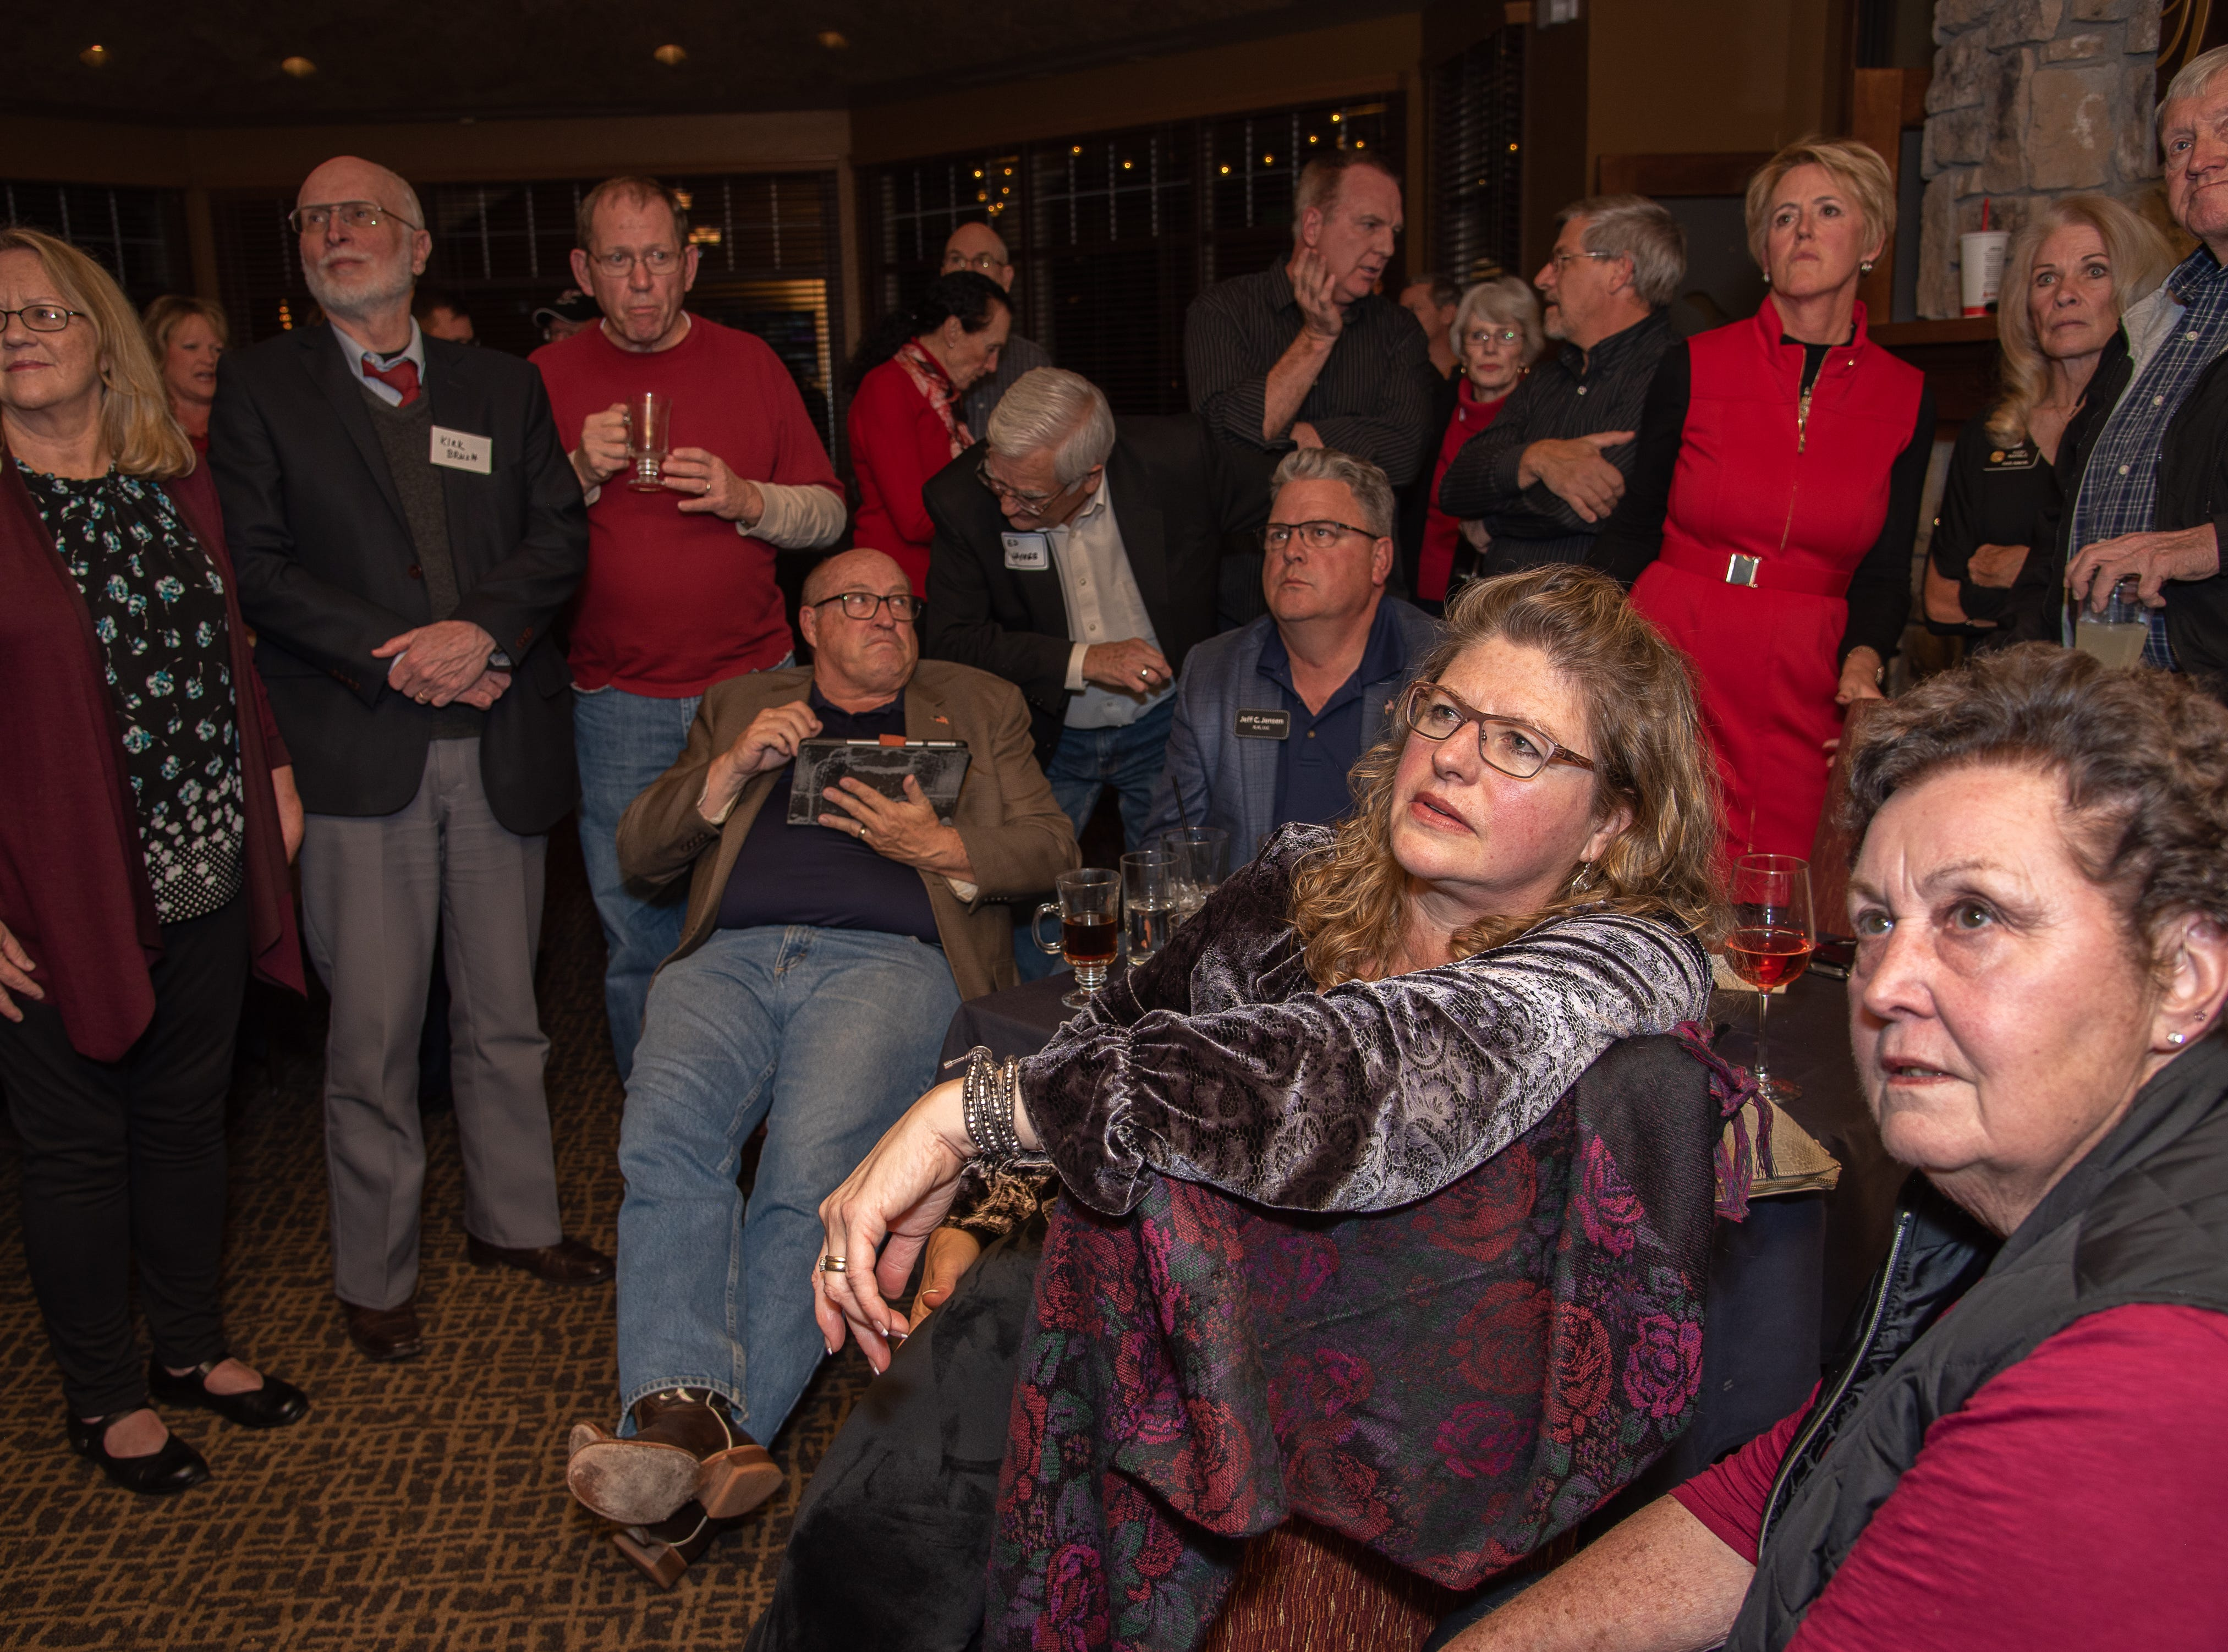 Aimee Jensen and Myrna Rodenberger, front, react to early election results with fellow GOP supporters on Tuesday, November 6, 2018, at Ptarmigan Country Club in Fort Collins, Colo.